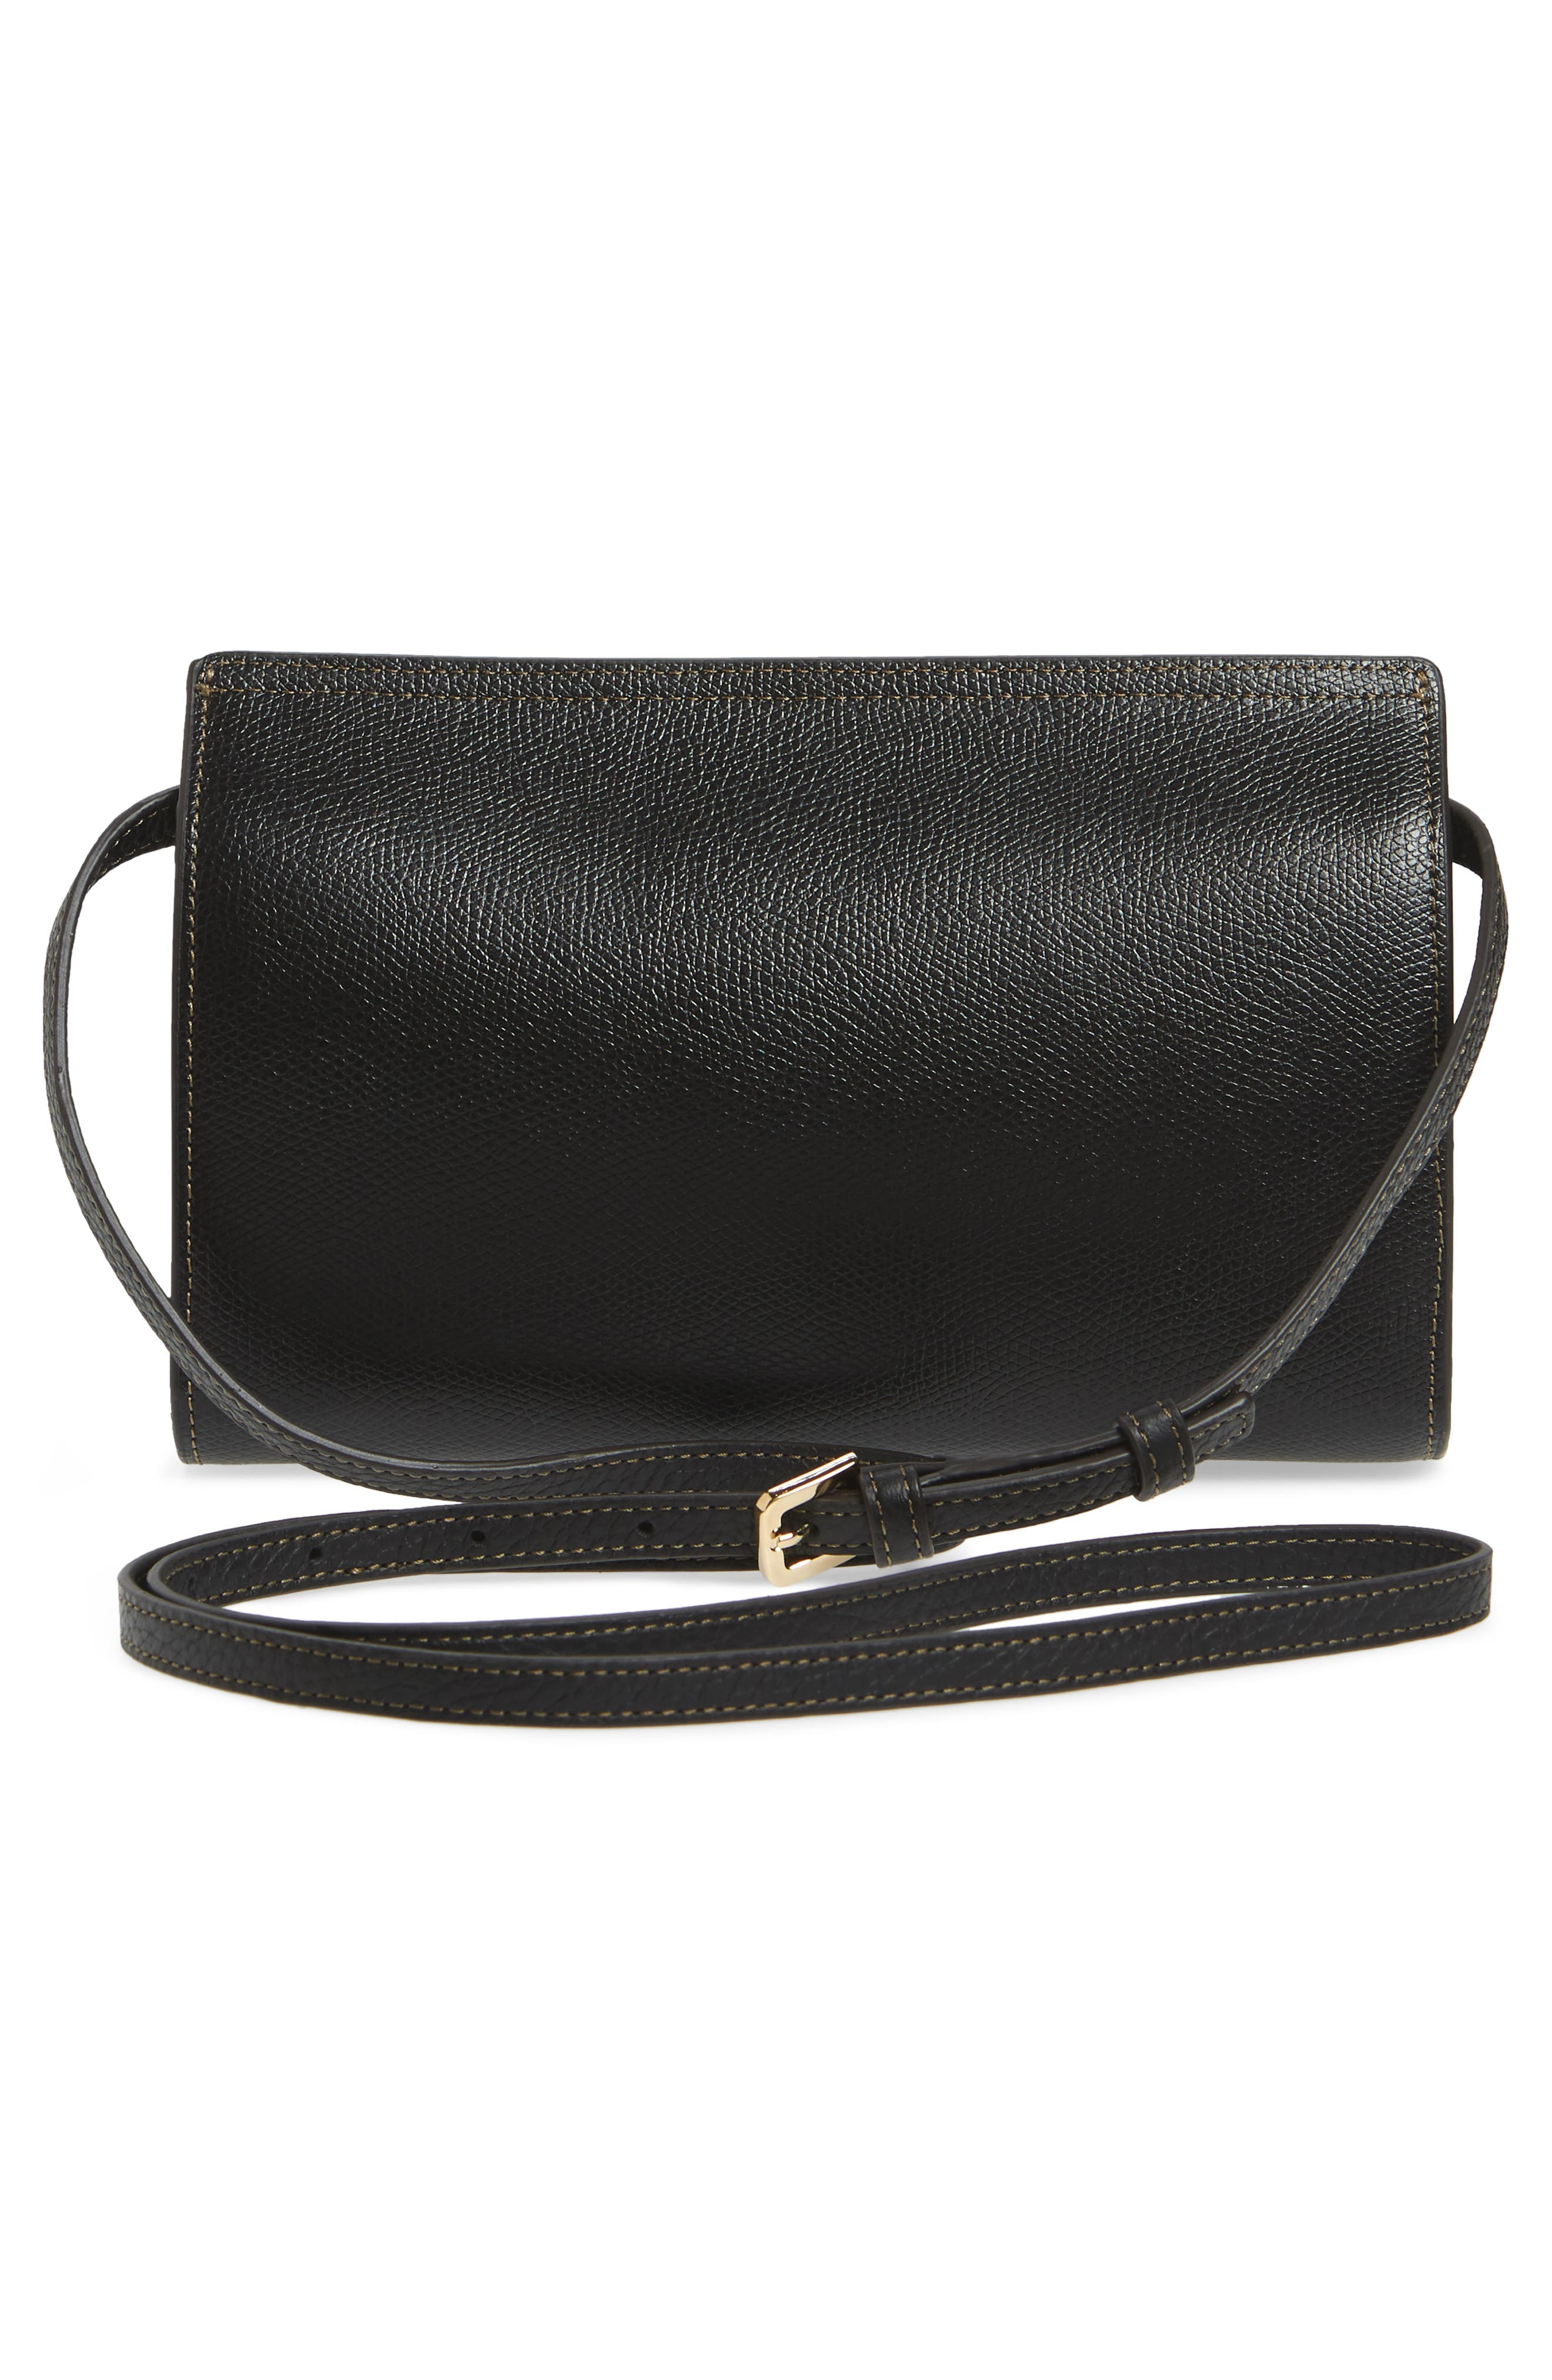 Mini Like Leather Crossbody Bag,                             Alternate thumbnail 3, color,                             004